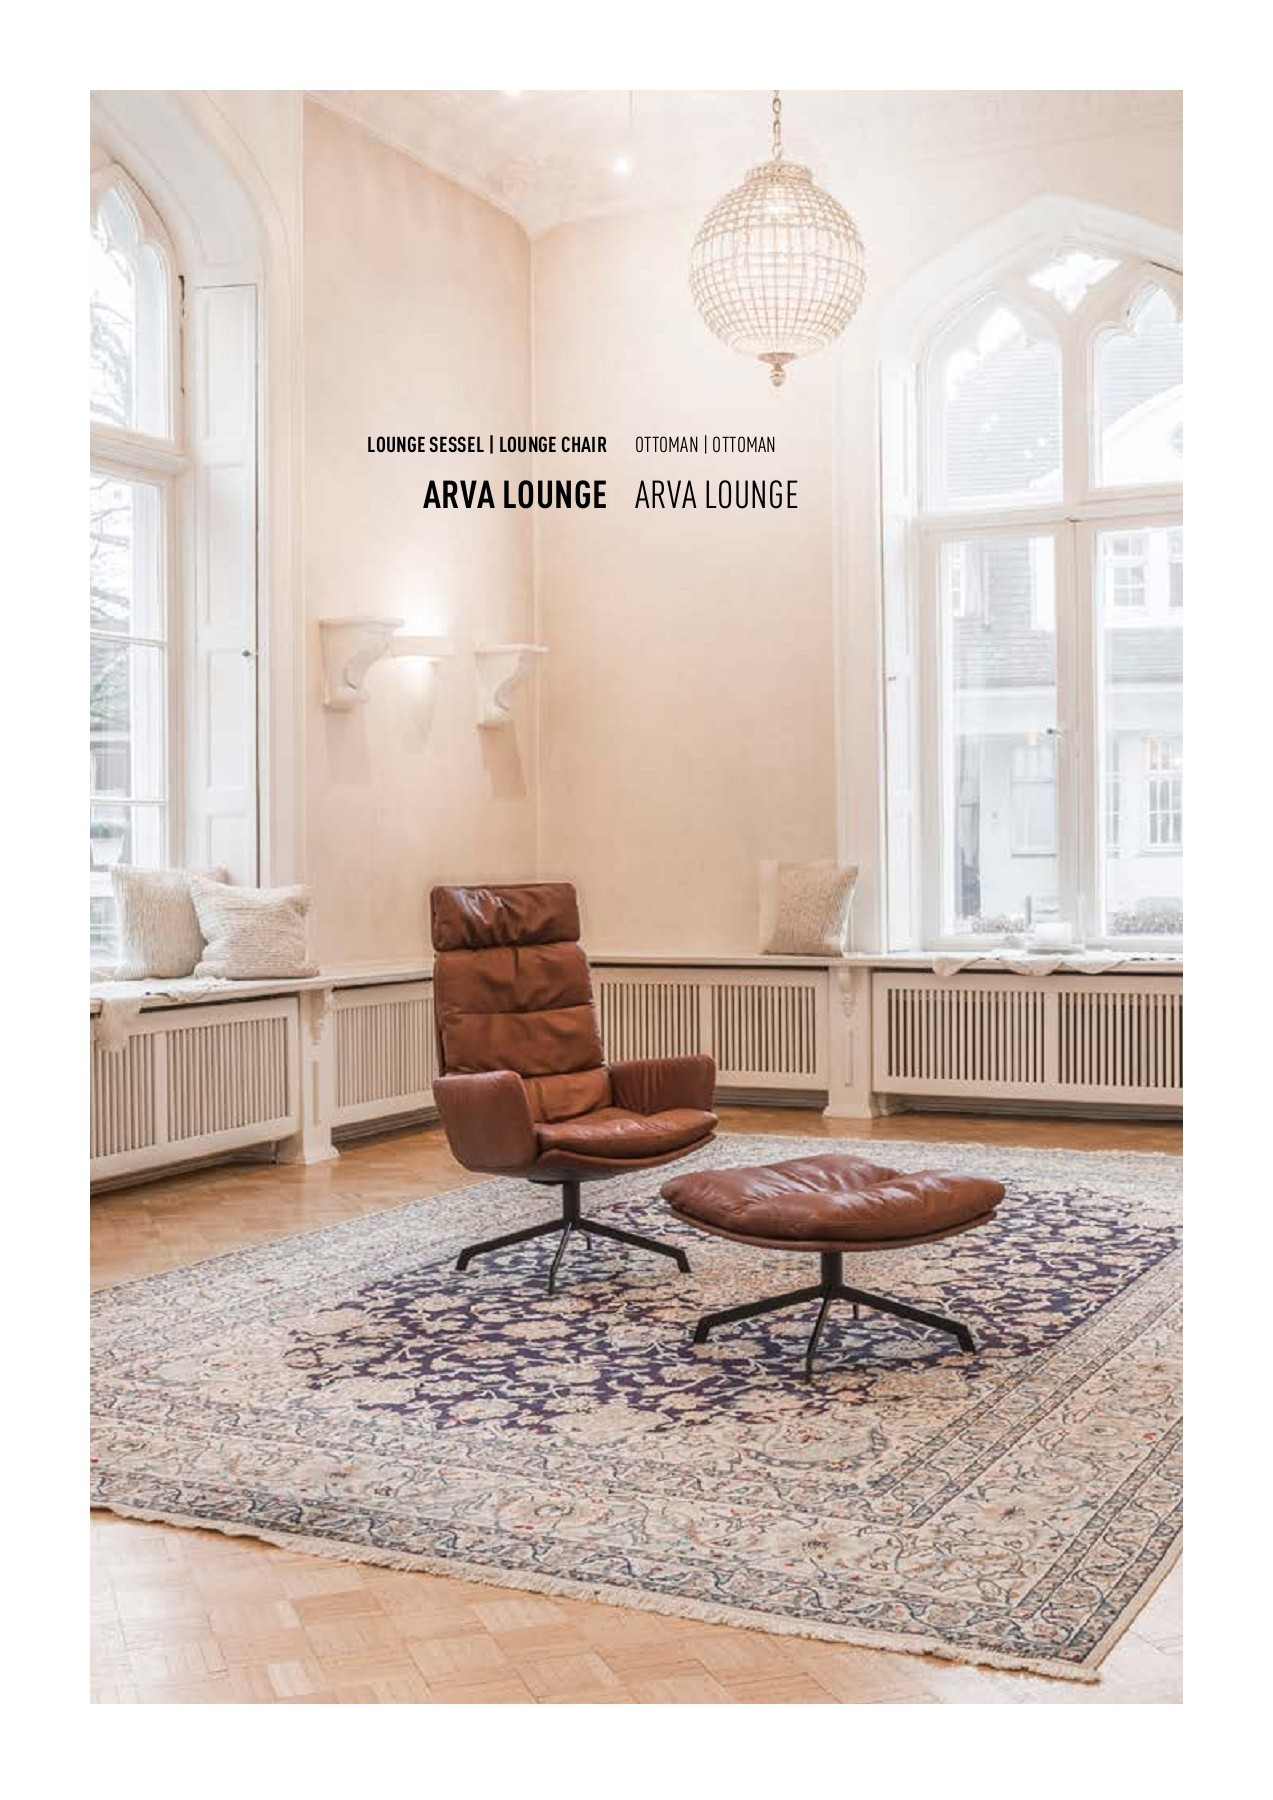 Ledersessel Lounge Catalogue Kff Pages 151 - 200 - Flip Pdf Download | Fliphtml5